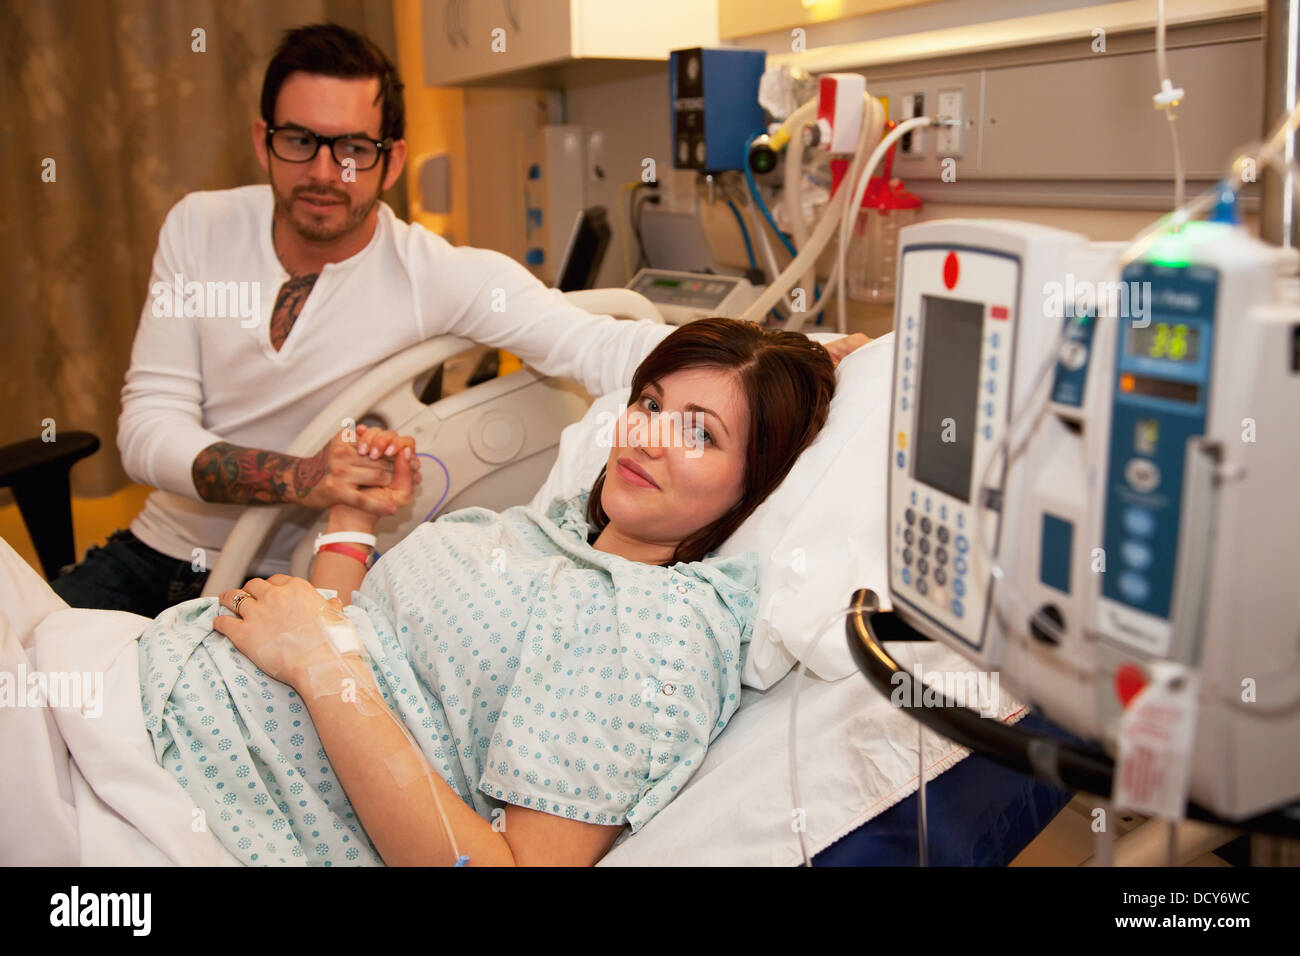 Couple Expecting Baby In Maternity Ward - Stock Image